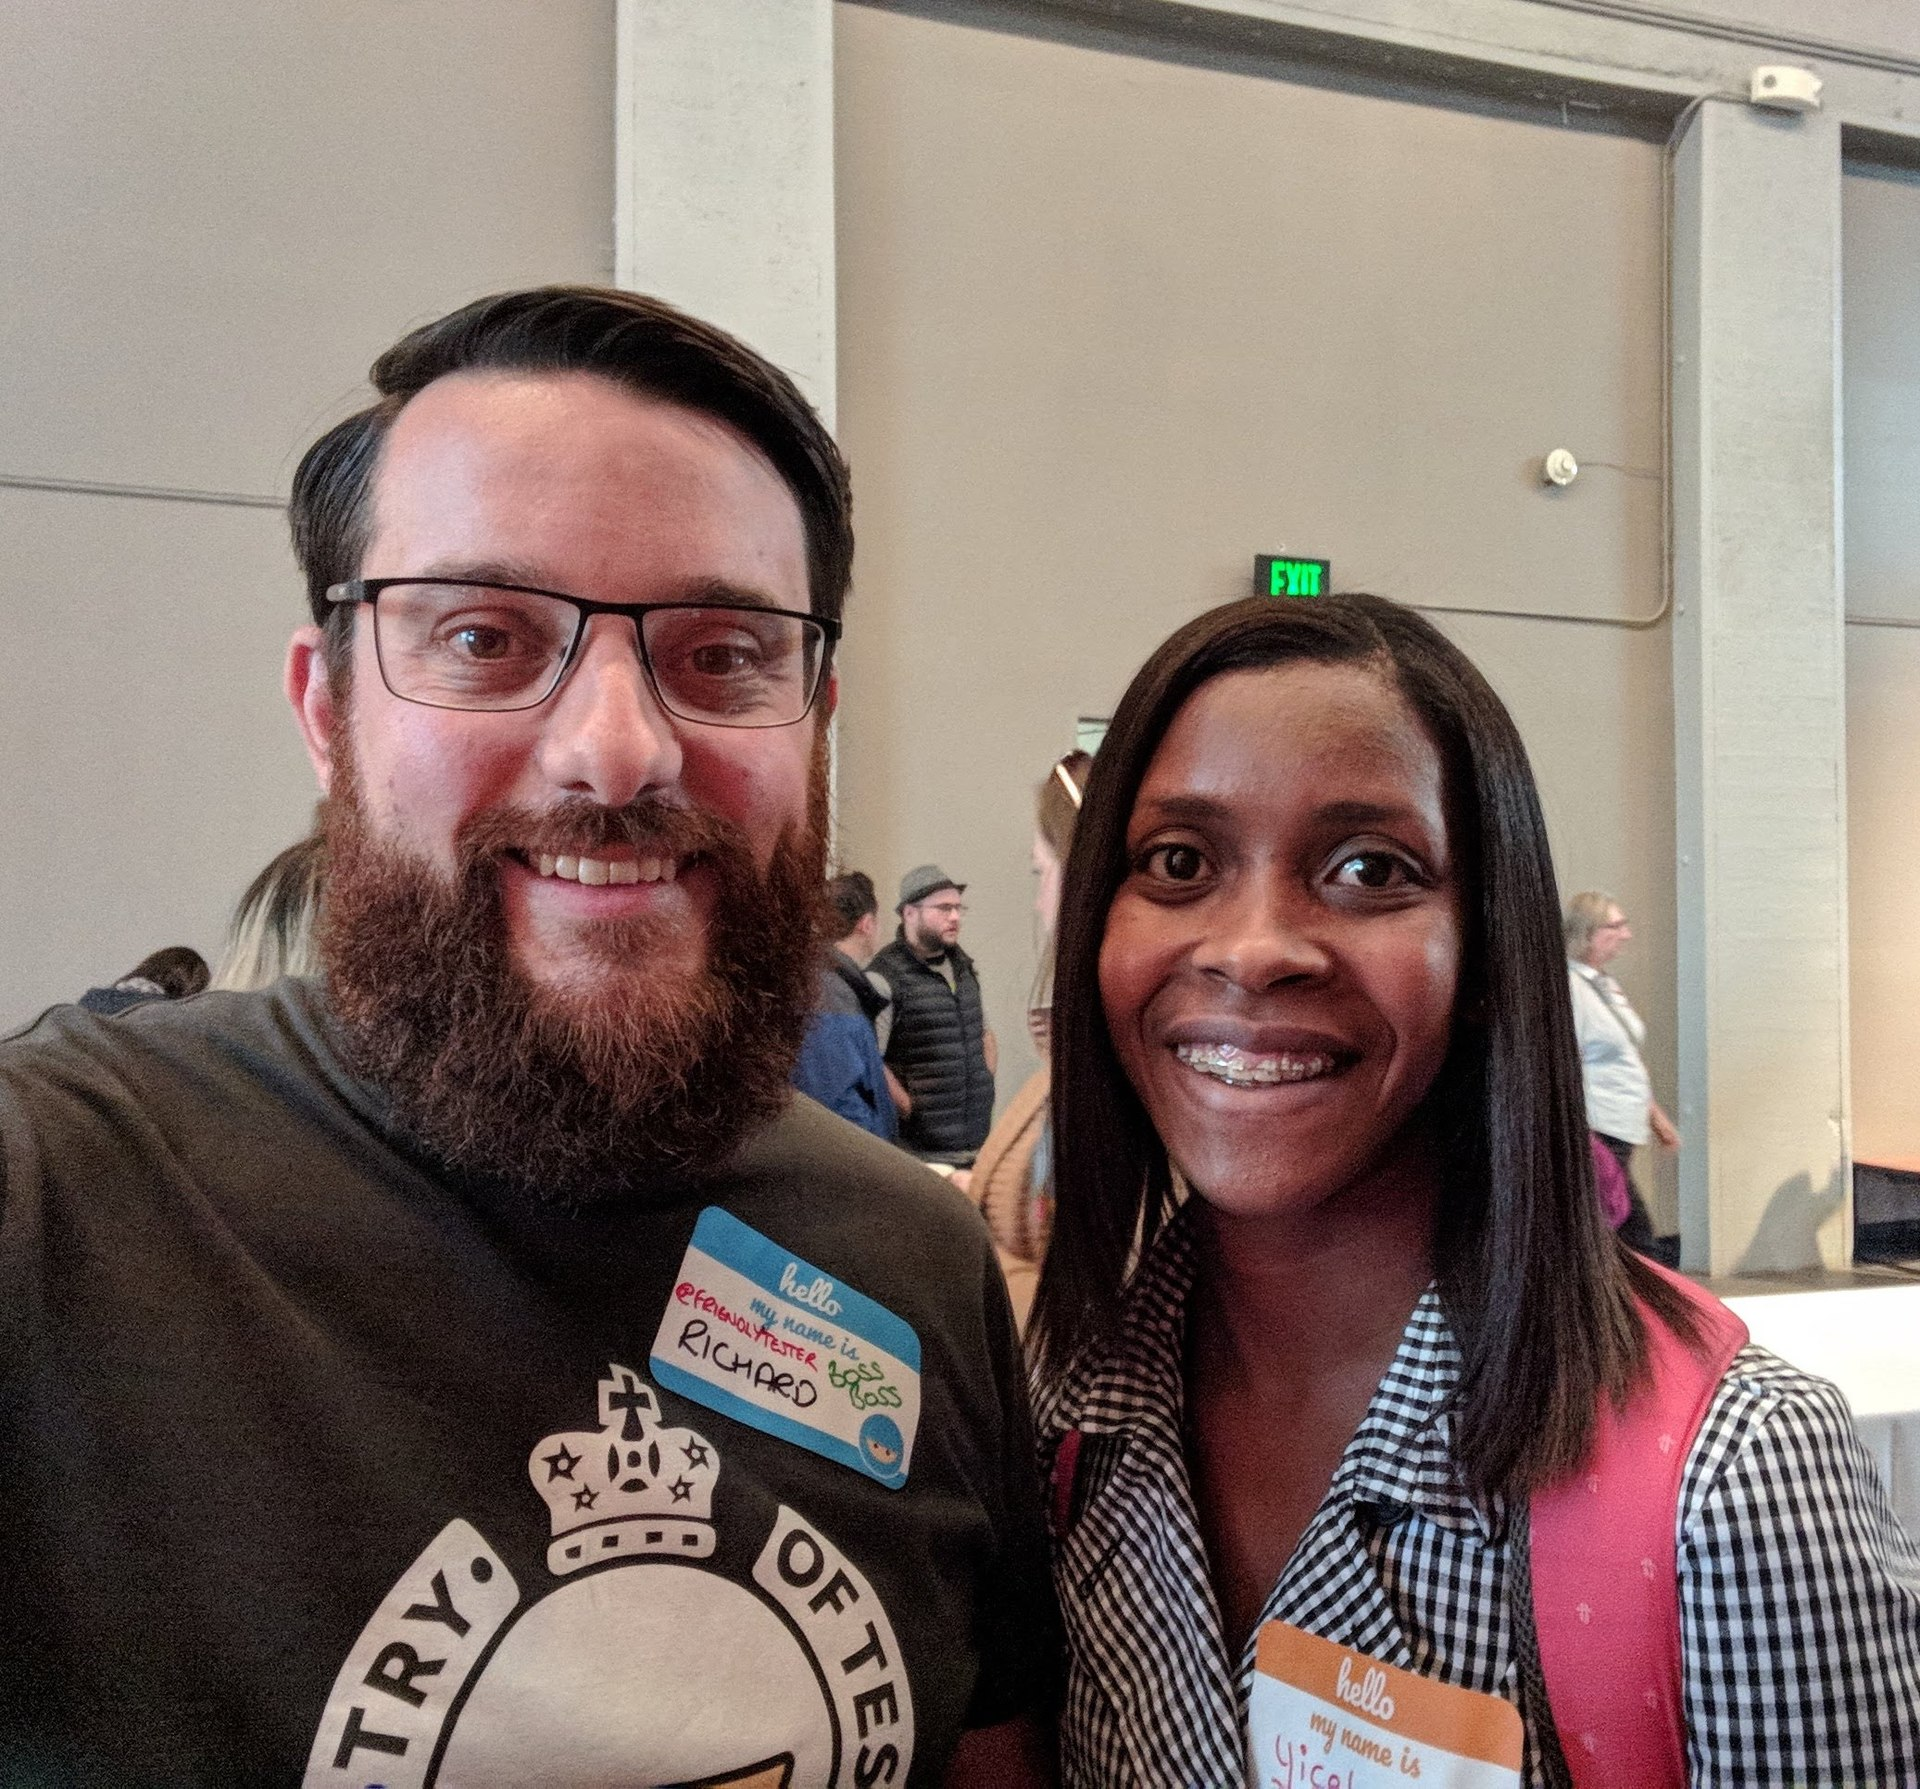 Yicela and Richard at TestBash San Francisco